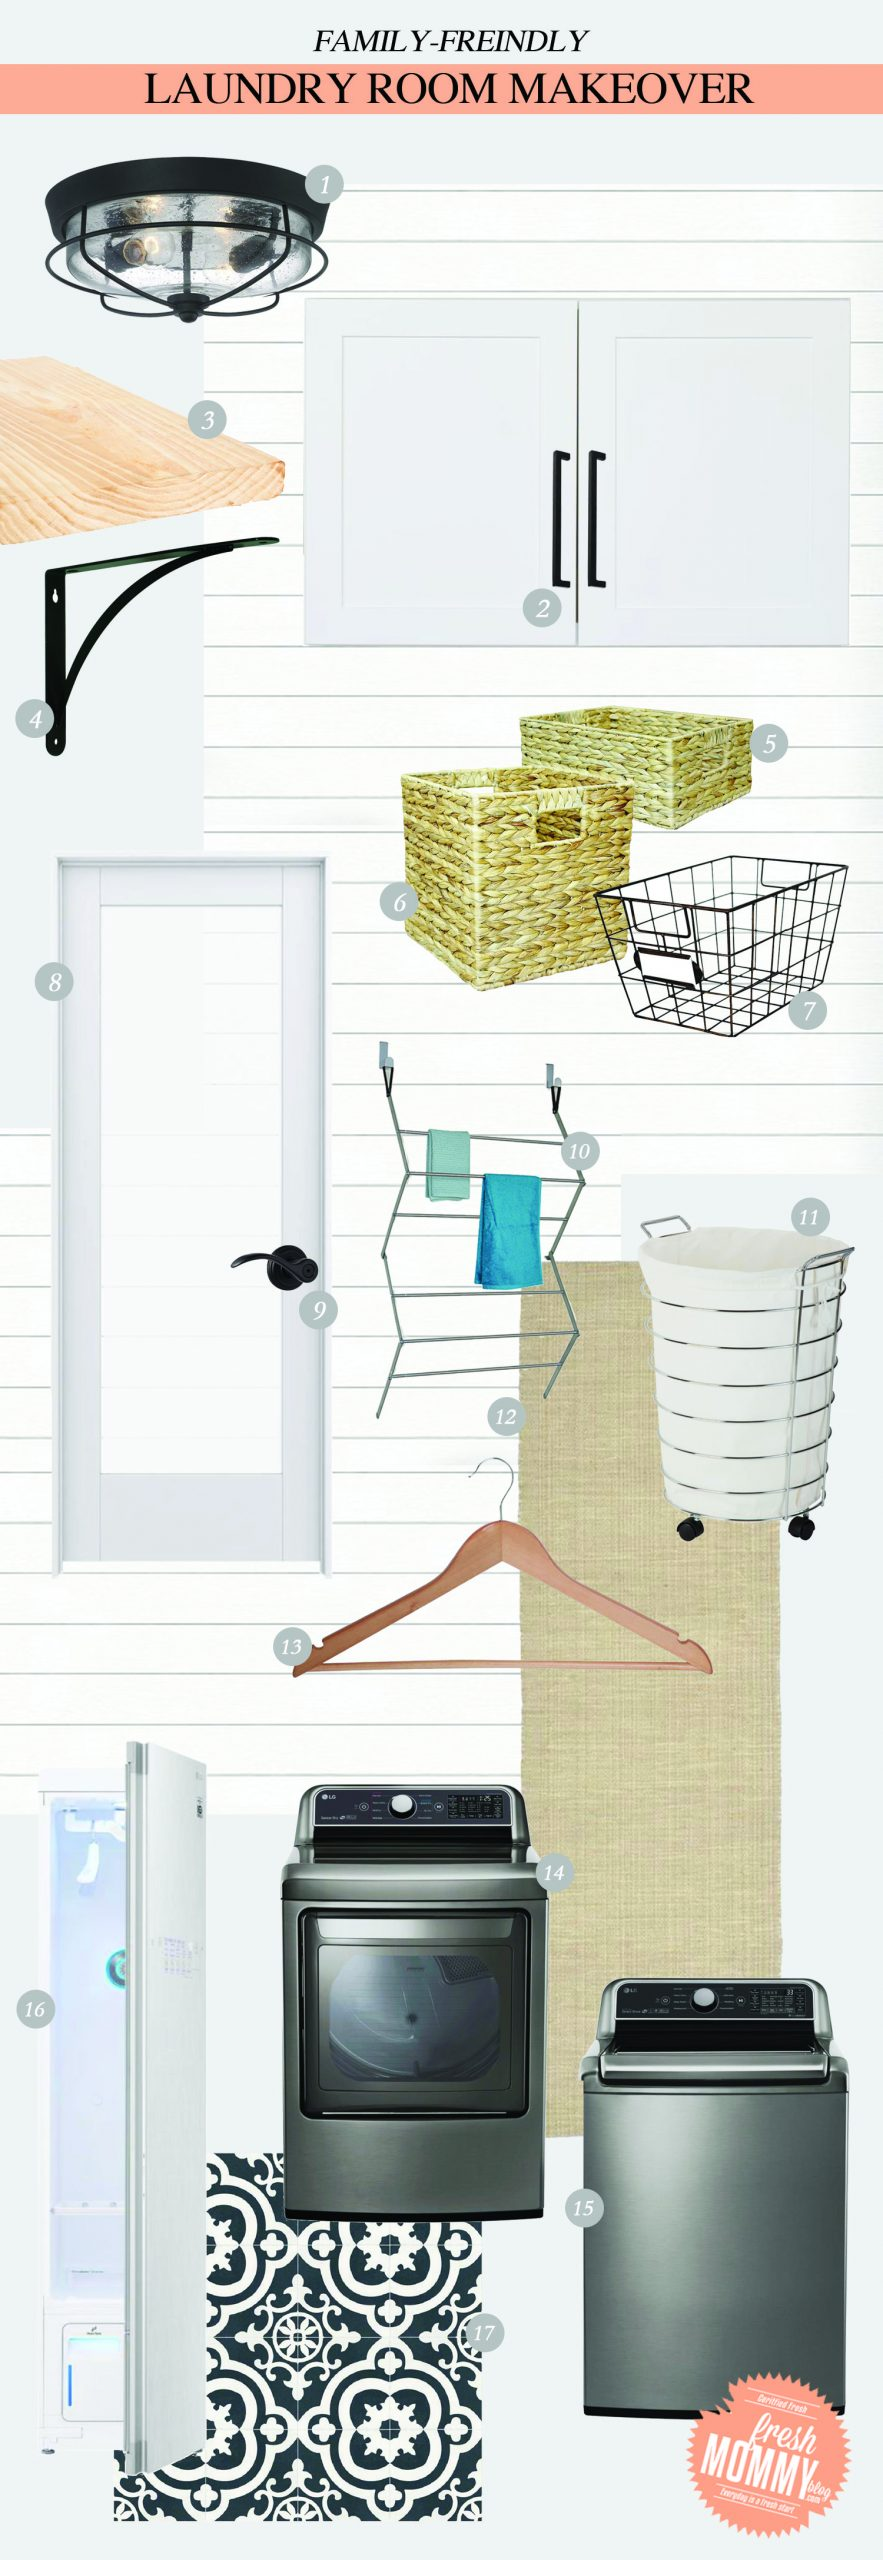 Laundry Room Makeover Ideas! Design plans and ideas for creating a family friendly laundry room by popular Florida lifestyle and home DIY blogger Tabitha Blue of Fresh Mommy Blog